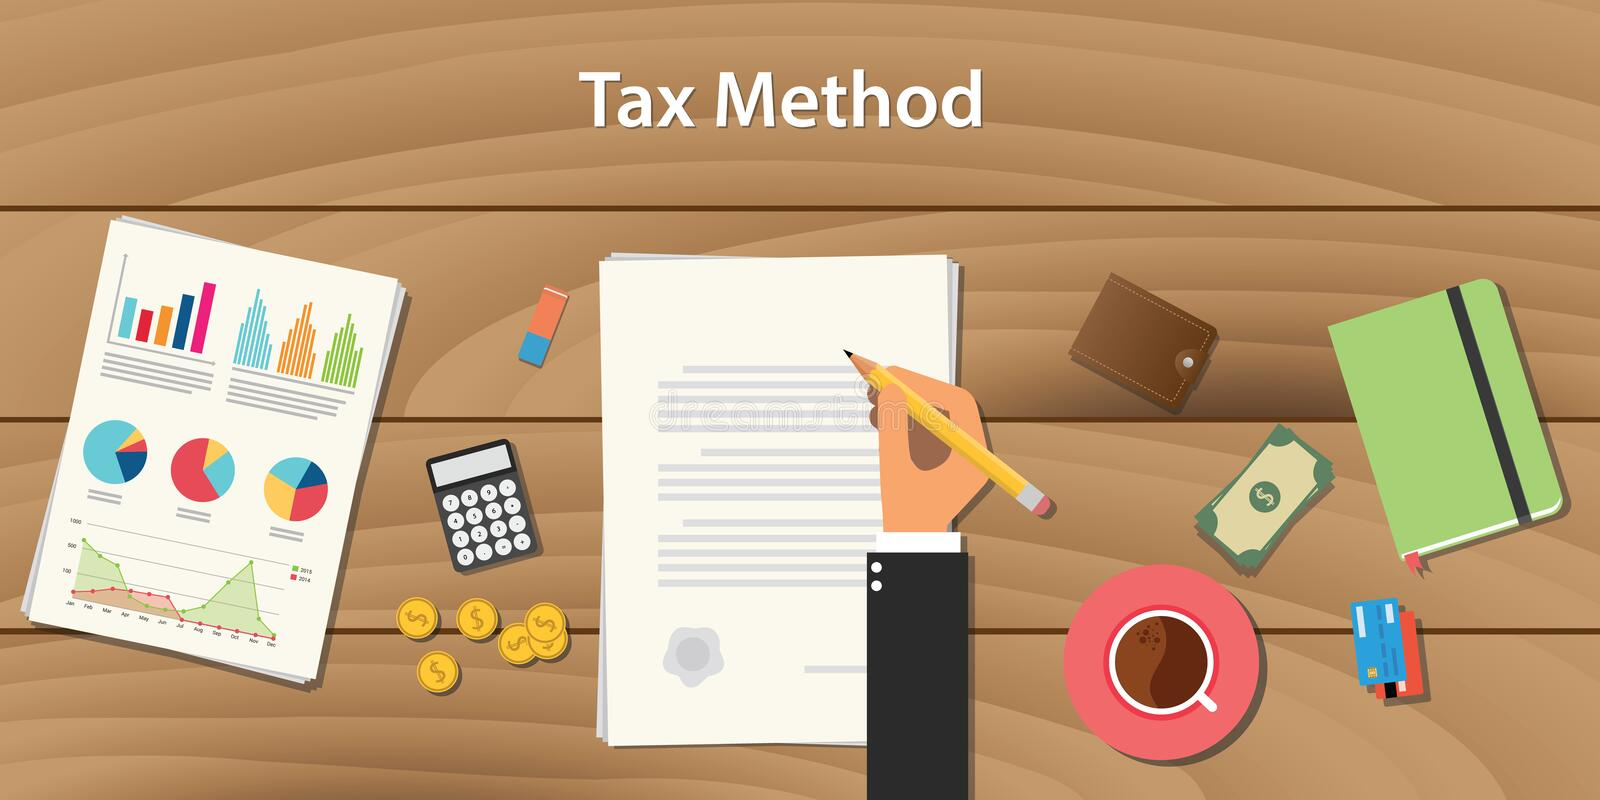 Tax method concept with businessman working on paper document hand signing a graph chart money royalty free illustration